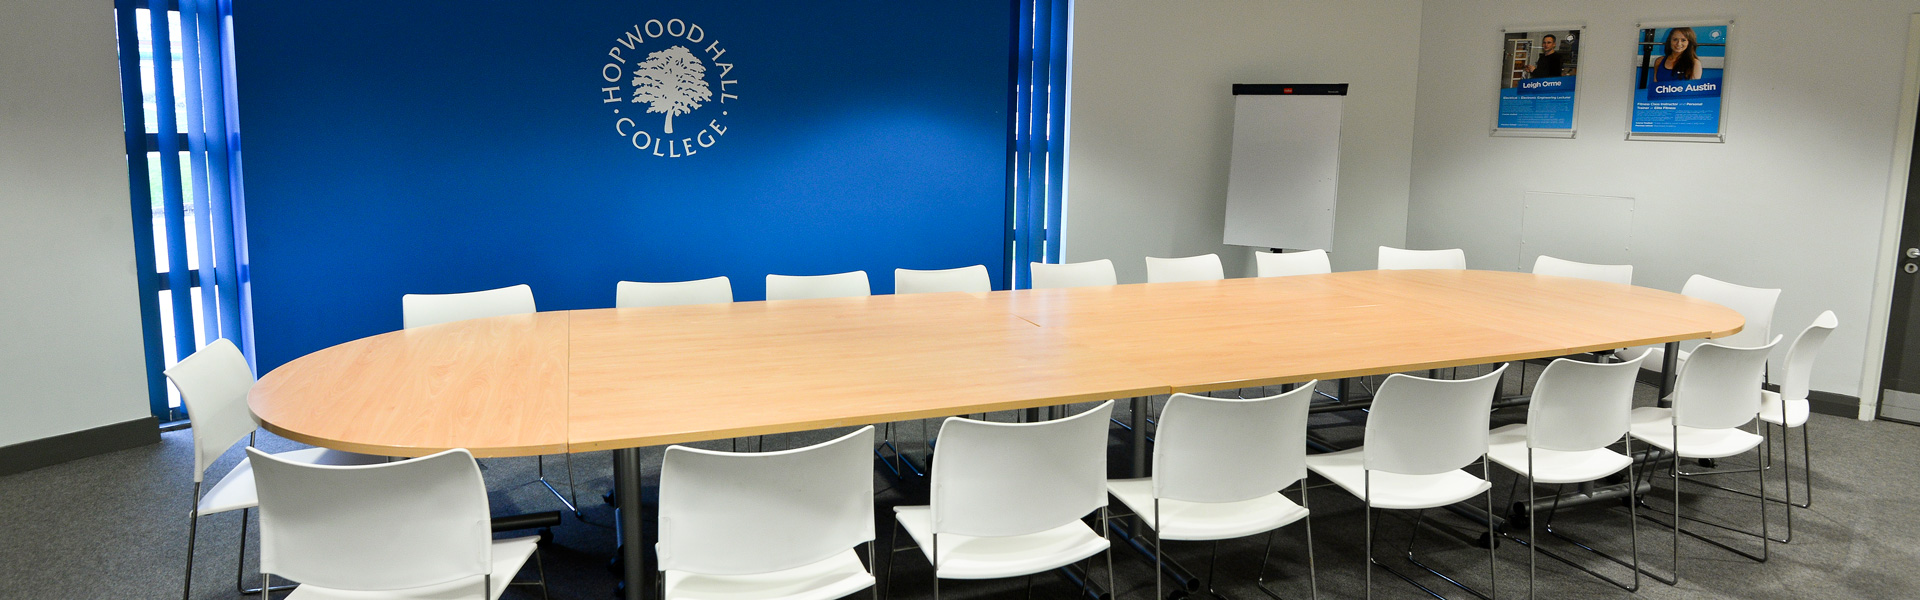 Conference Facilities Available At Hopwood Hall College - Blue conference table